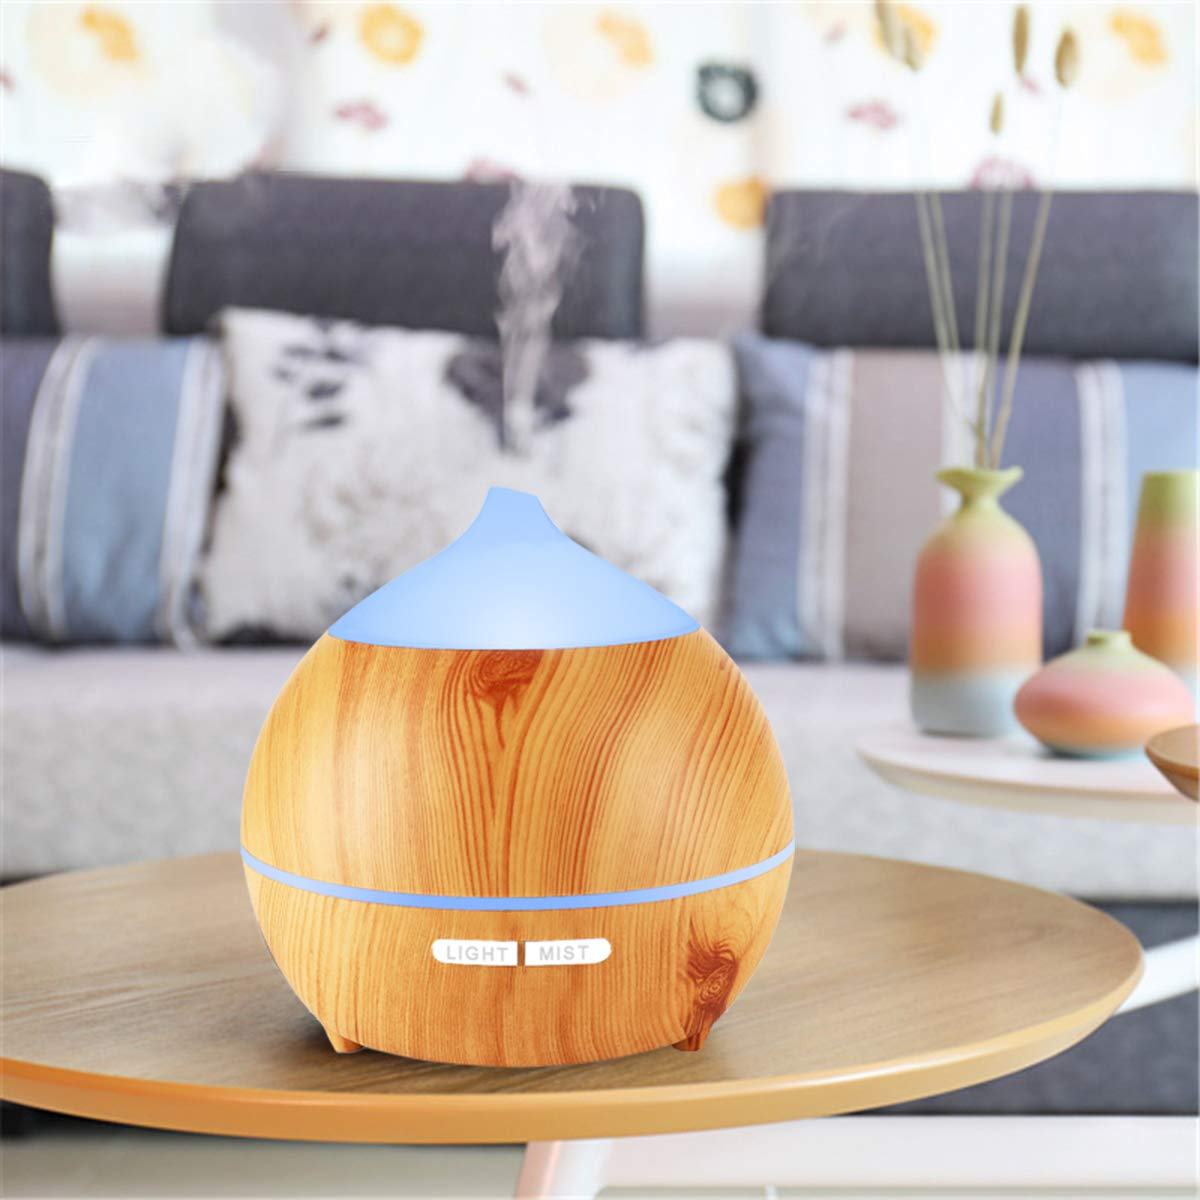 Essential Oil Diffuser XFelectronics 2 pack 250ml Diffusers for Essential Oils Wood Grain Aromatherapy Diffuser Ultrasonic Humidifier with Waterless Auto Shut off, 7 Colors Light for Home Office Baby by Xfelec (Image #8)